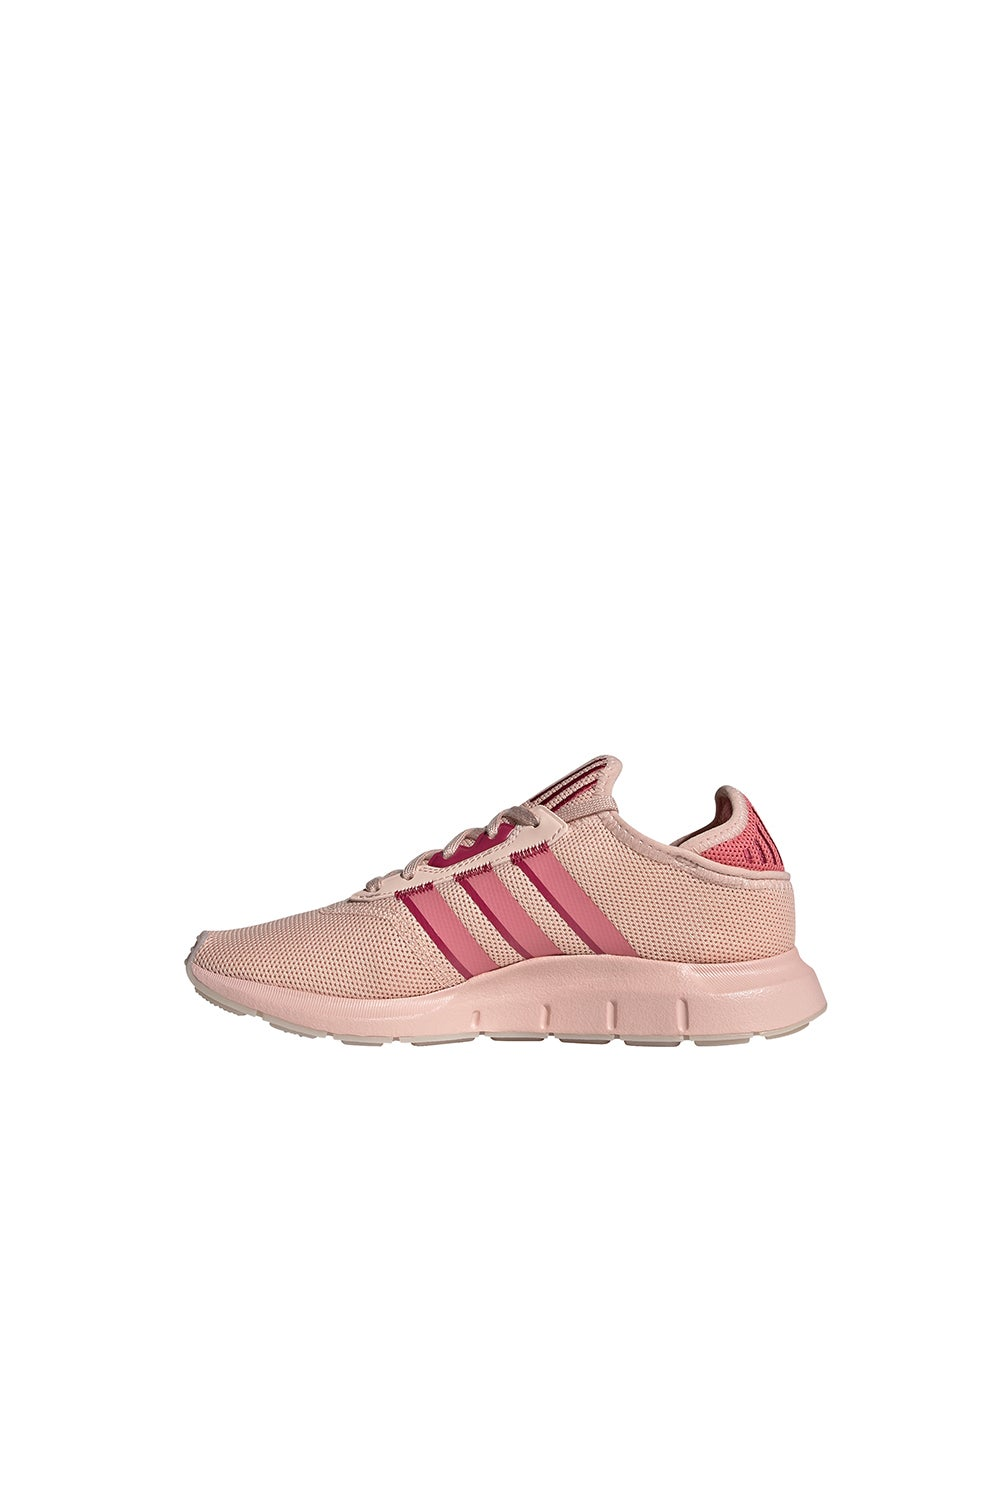 adidas Swift Run X Vapour Pink/Hazy Rose/Wild Pink